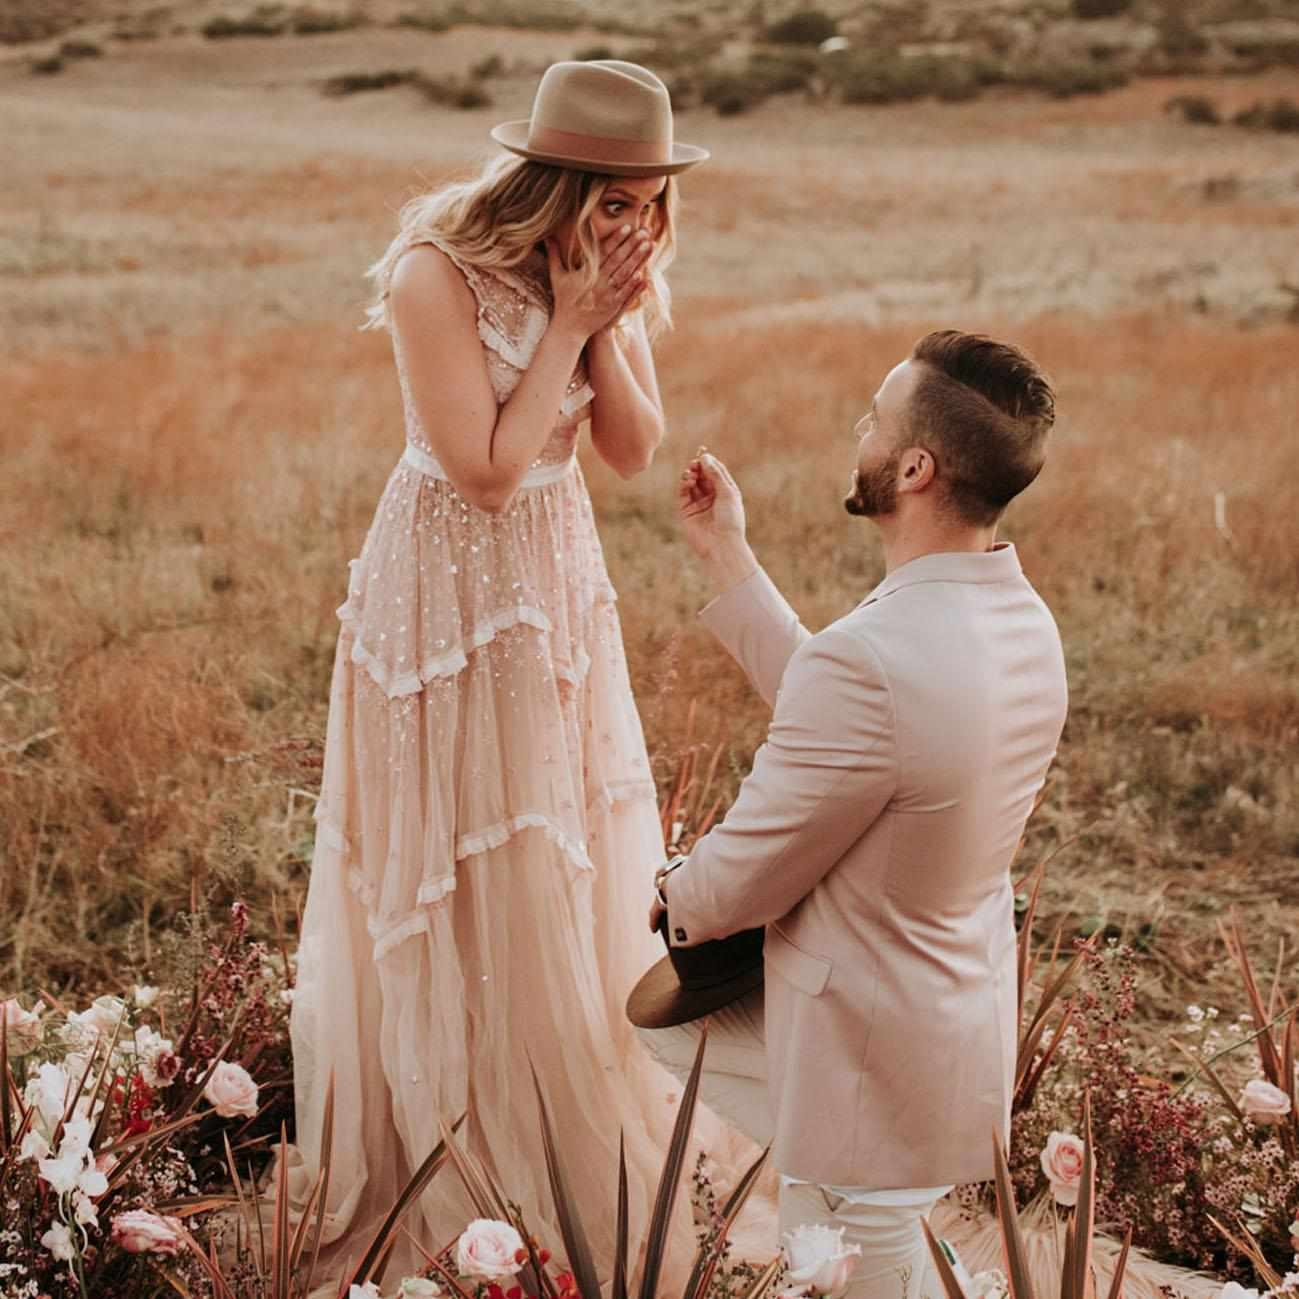 Basic Tips for Planning Your Wedding Proposal